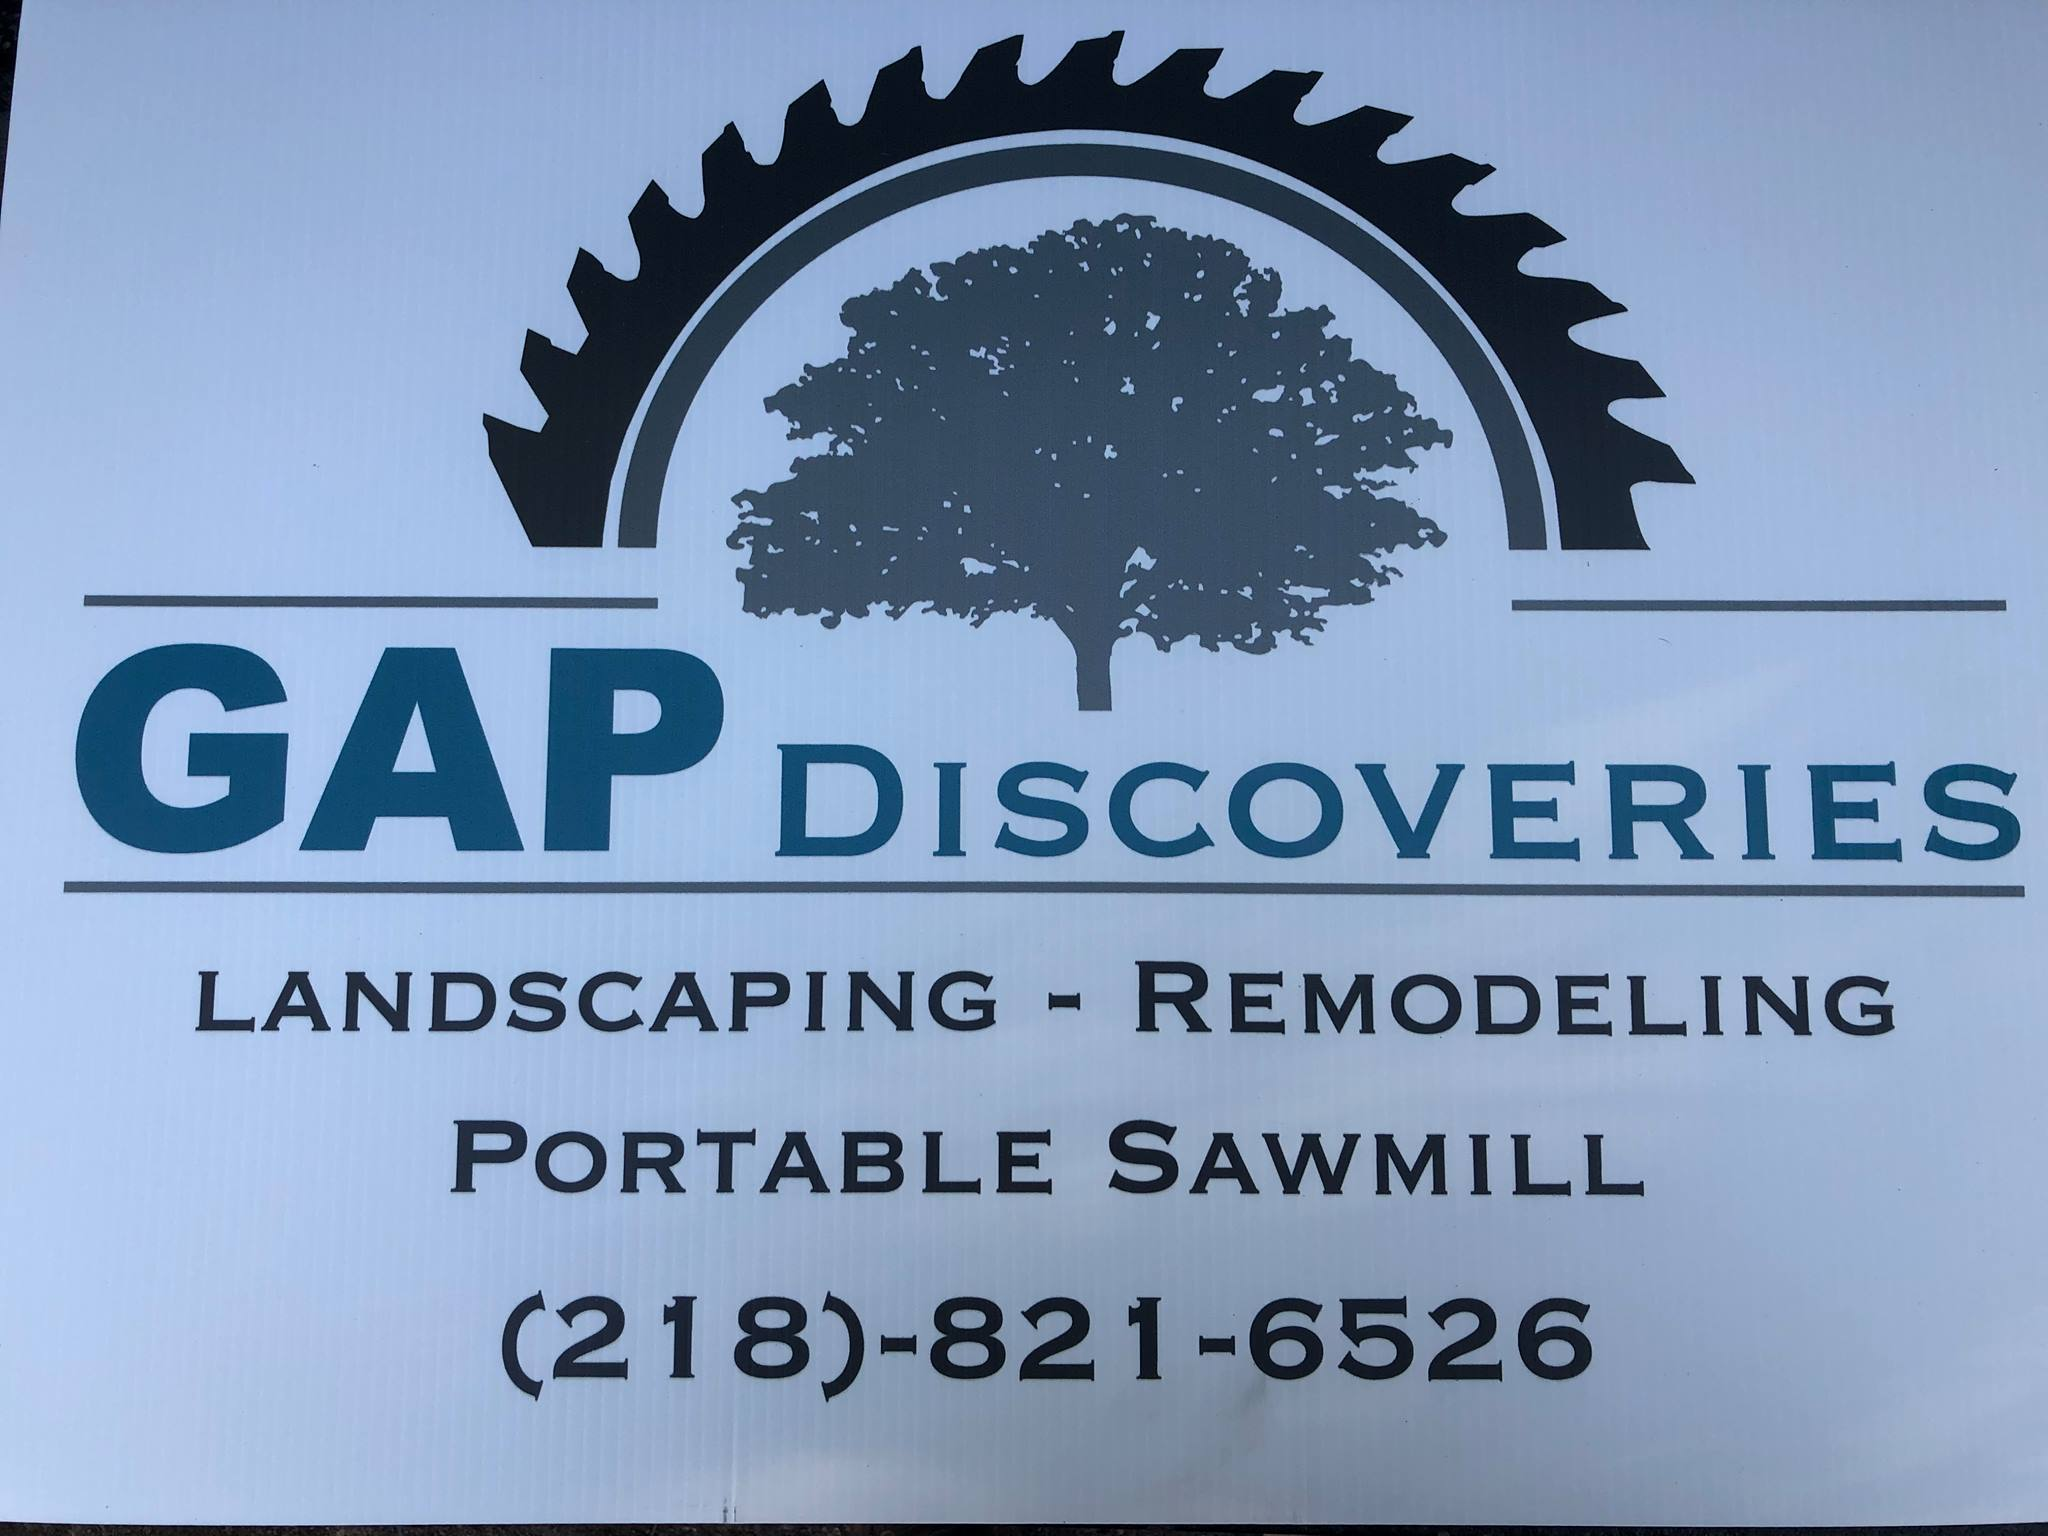 GAP Discoveries